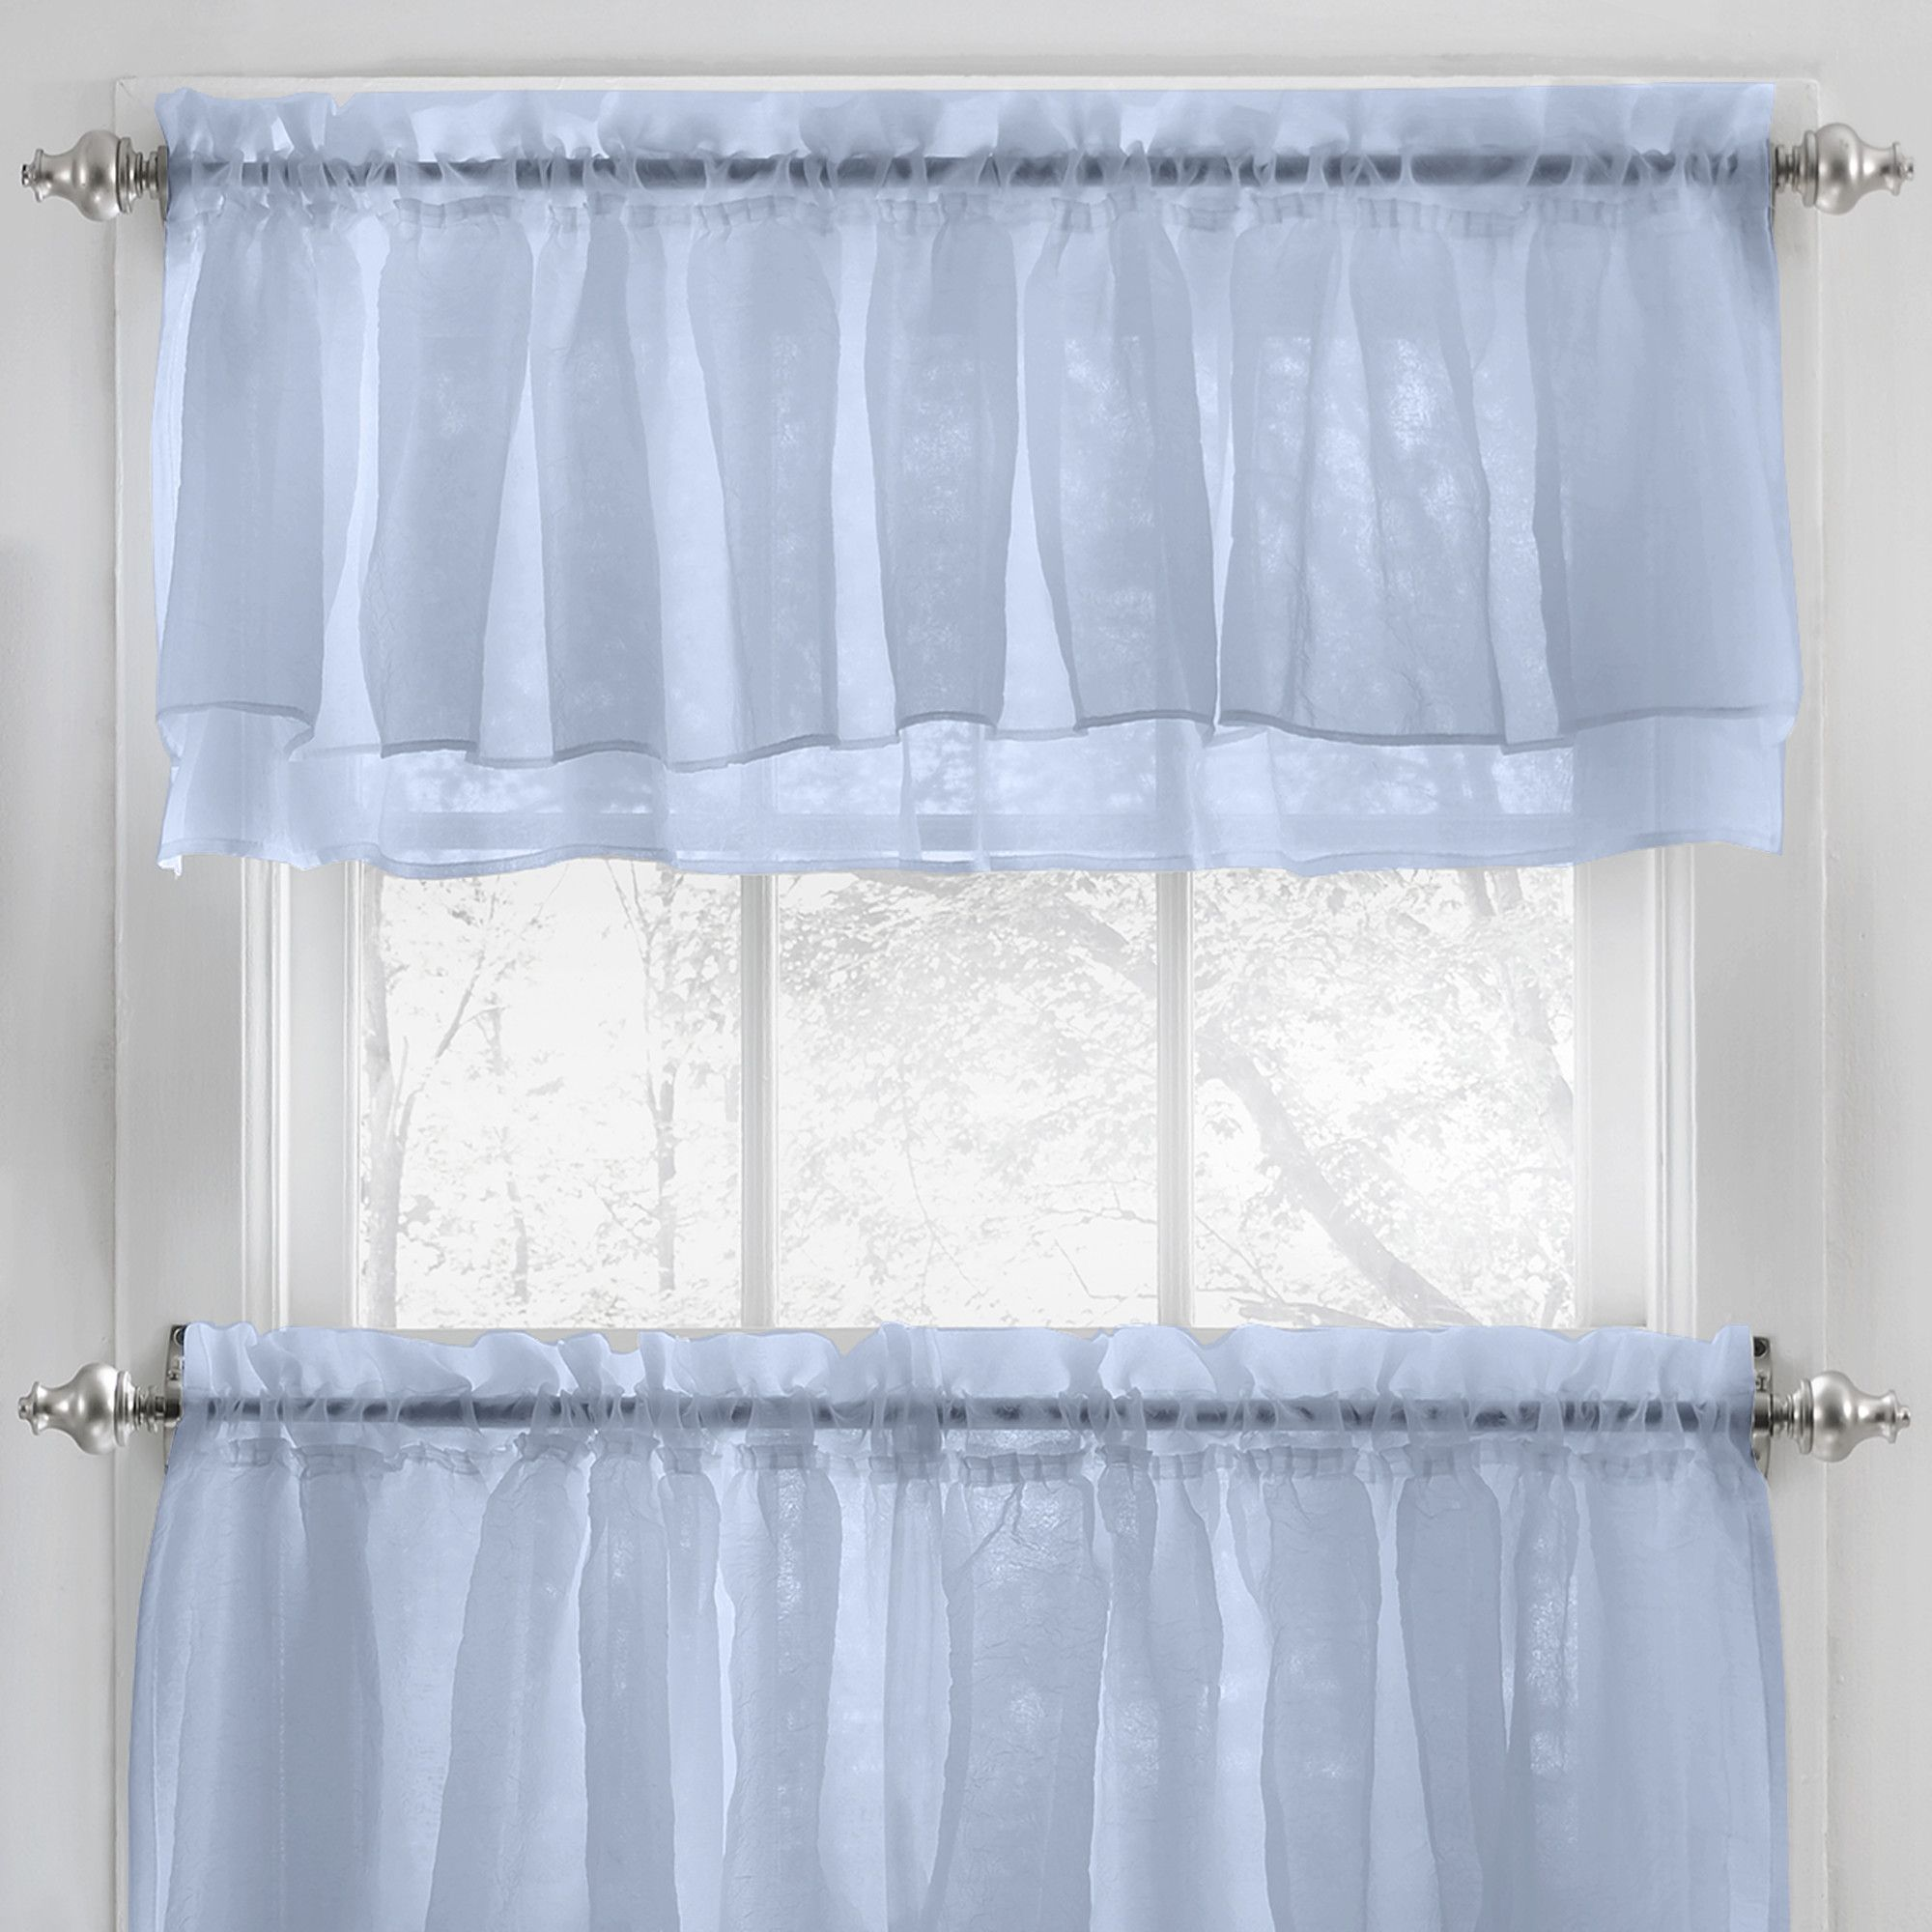 Elegant Crushed Voile Ruffle Kitchen Window Curtain Valance ...